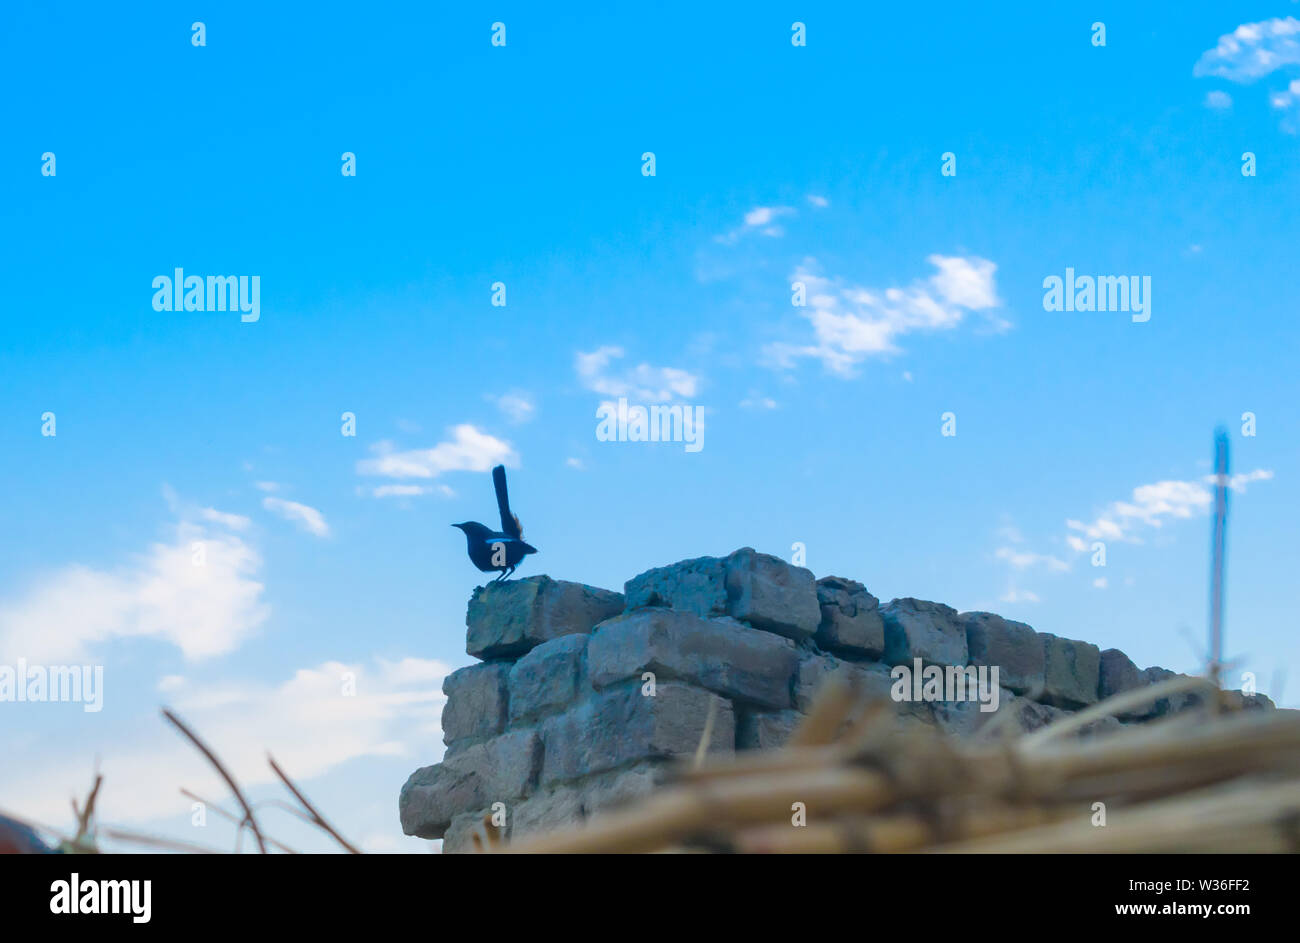 a cape robin chat sitting on a wall at evening,with cloudy sky background. Stock Photo